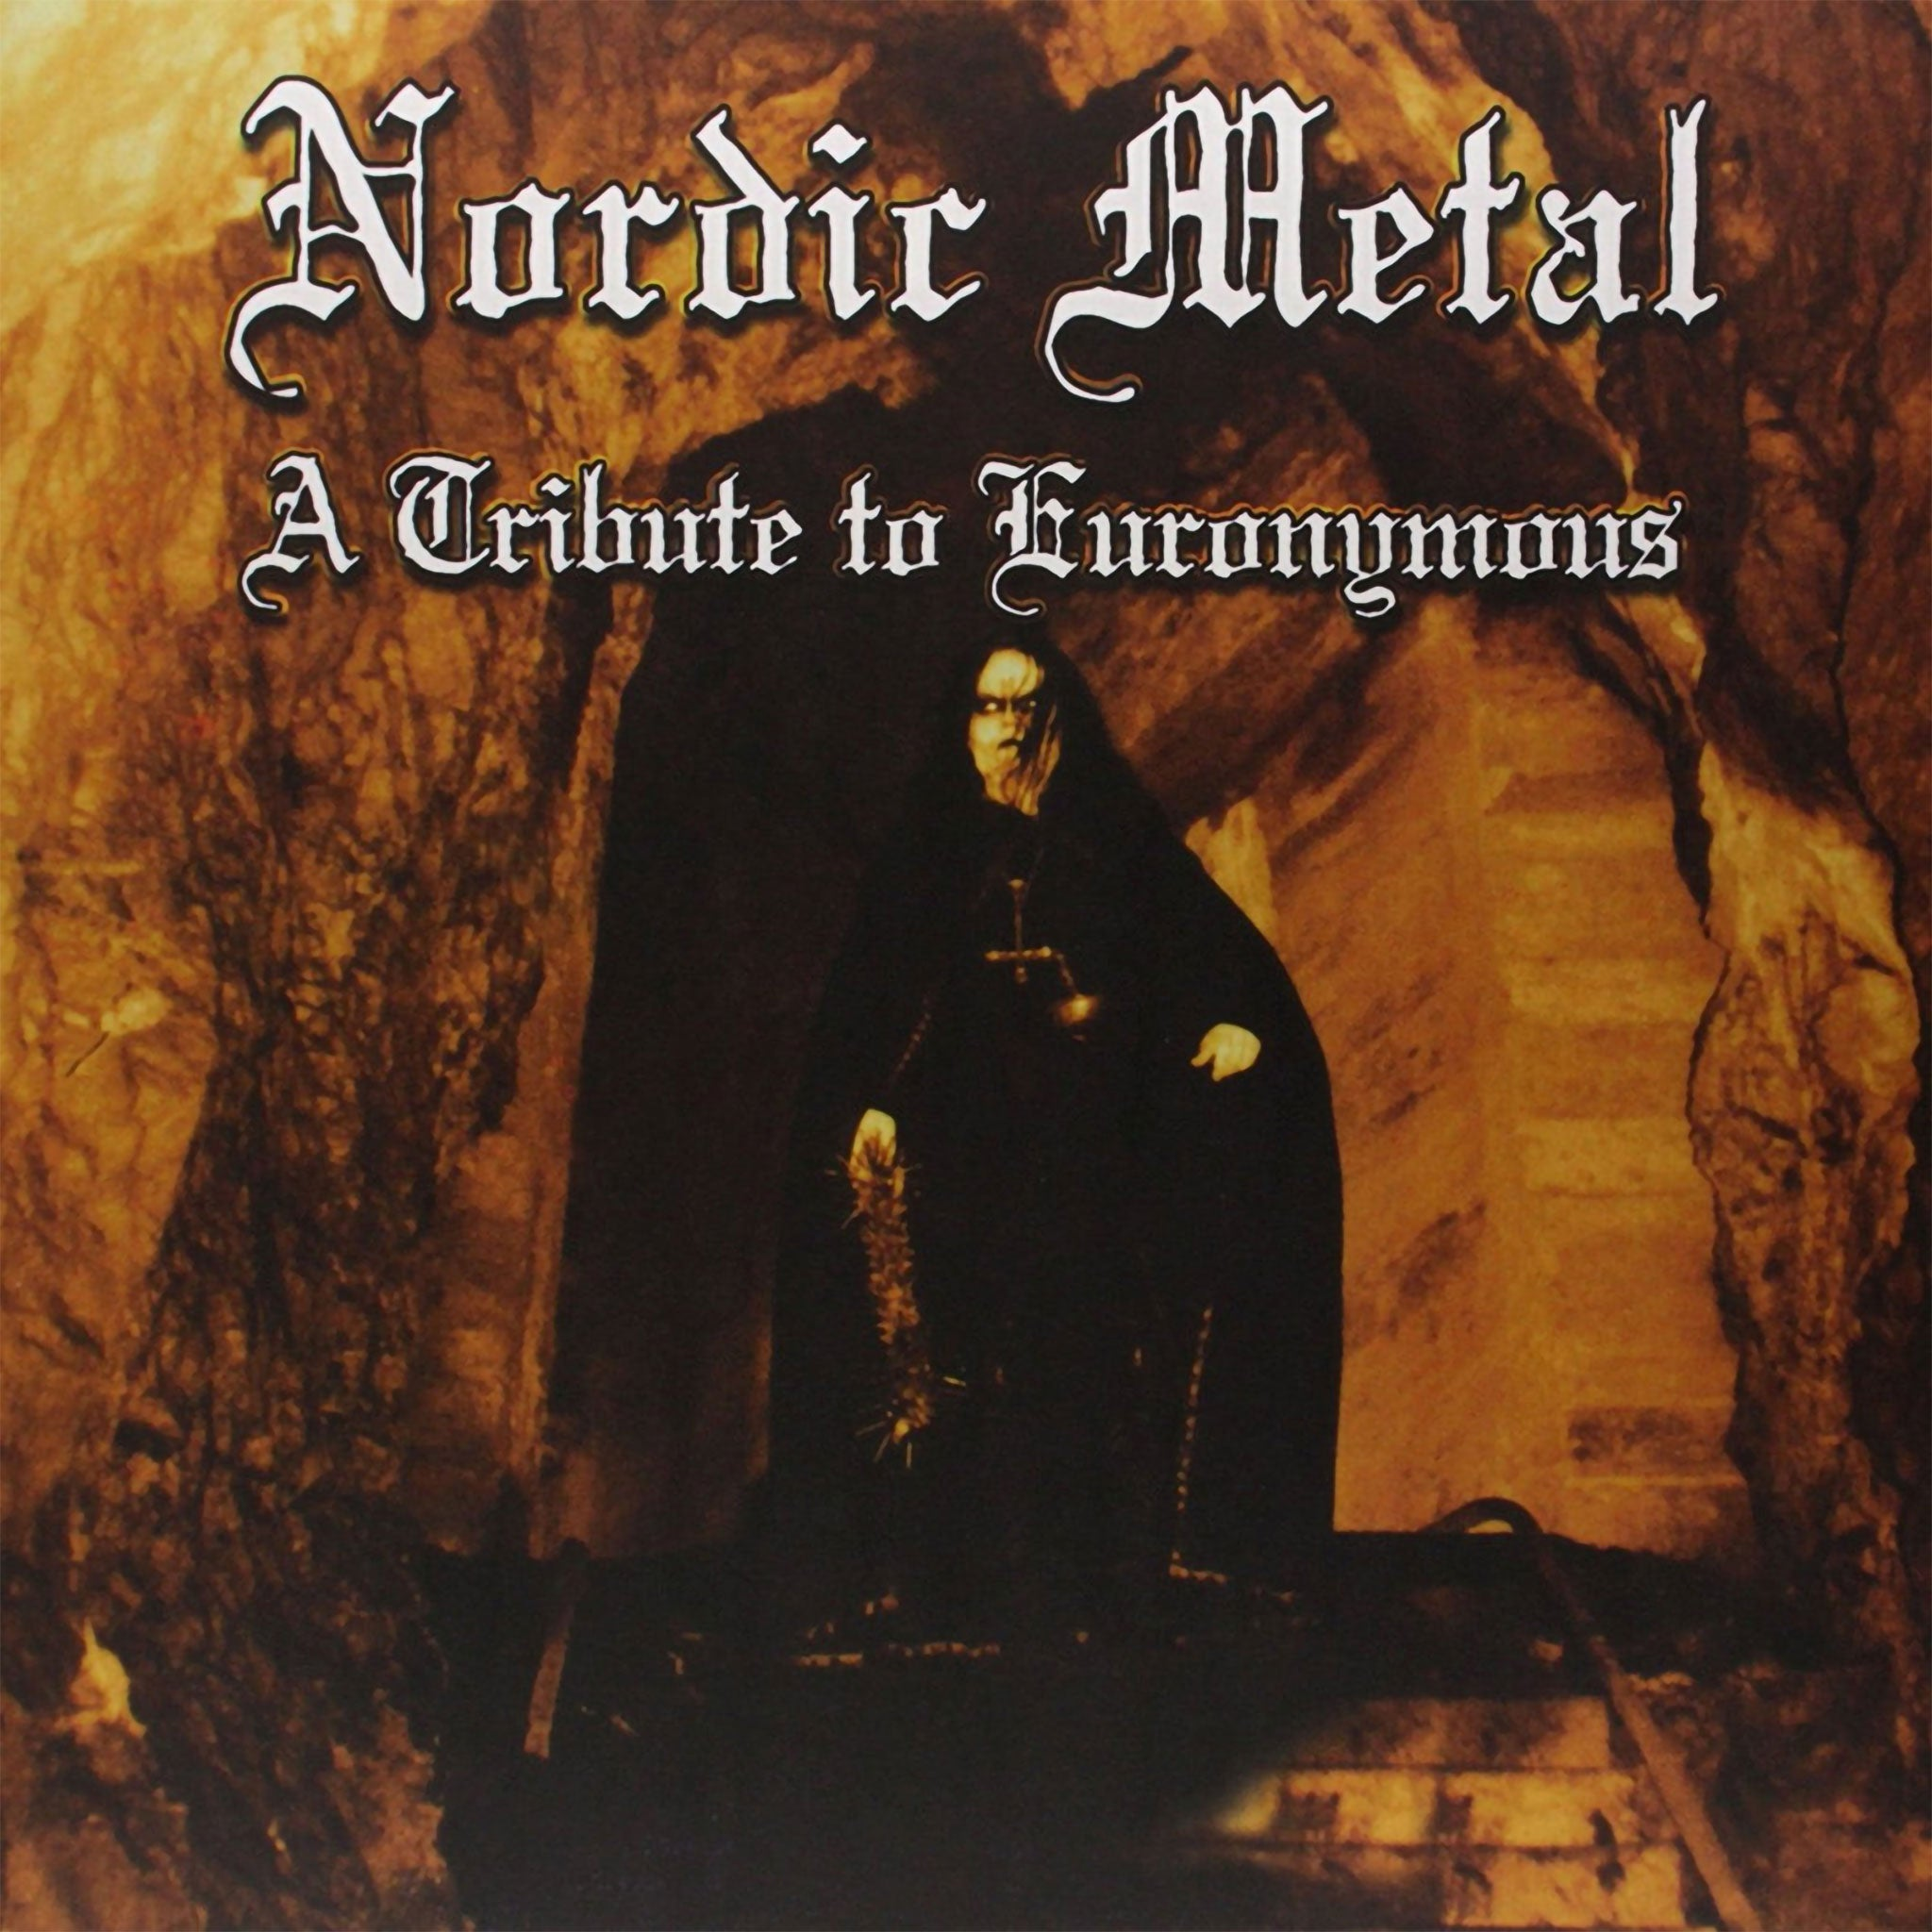 Various - Nordic Metal: A Tribute to Euronymous (2012 Reissue) (CD)